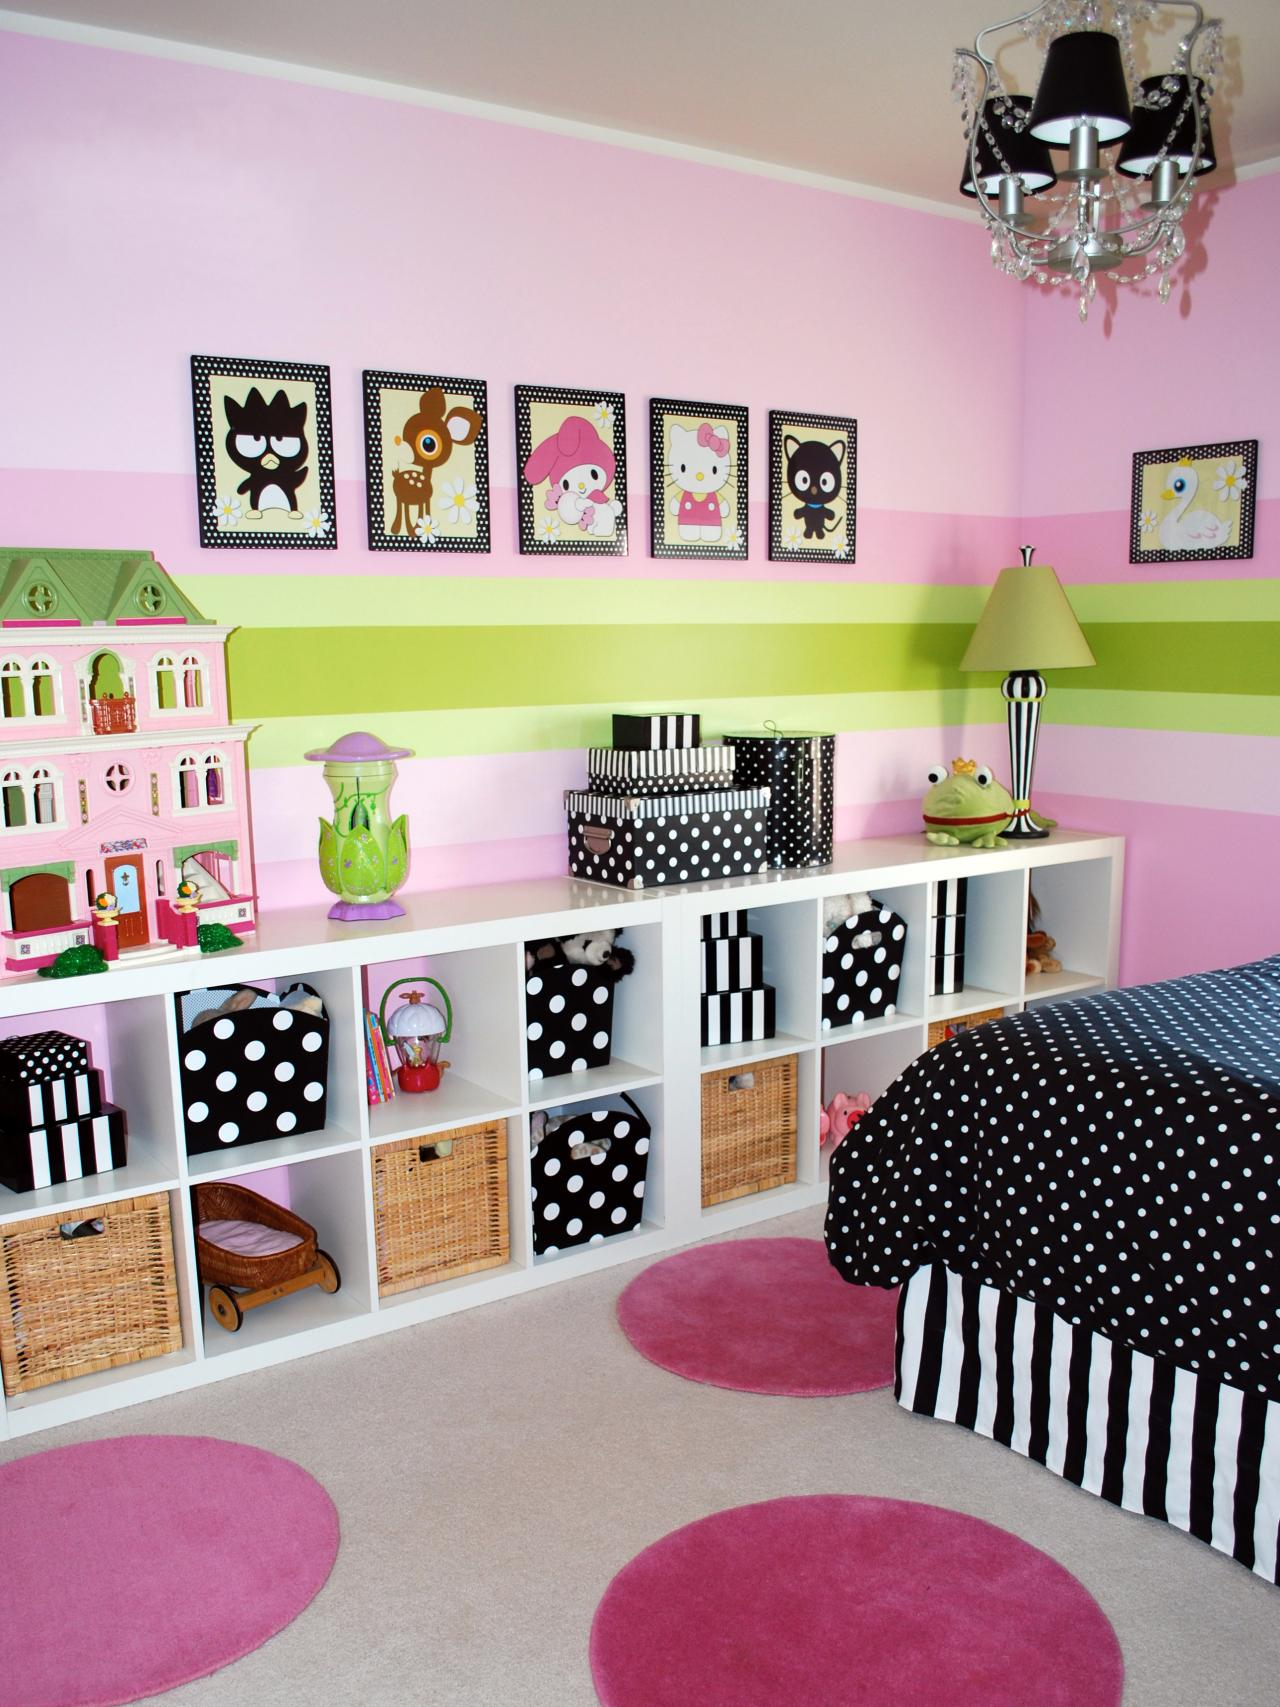 Creative Traditional Kids Room Design